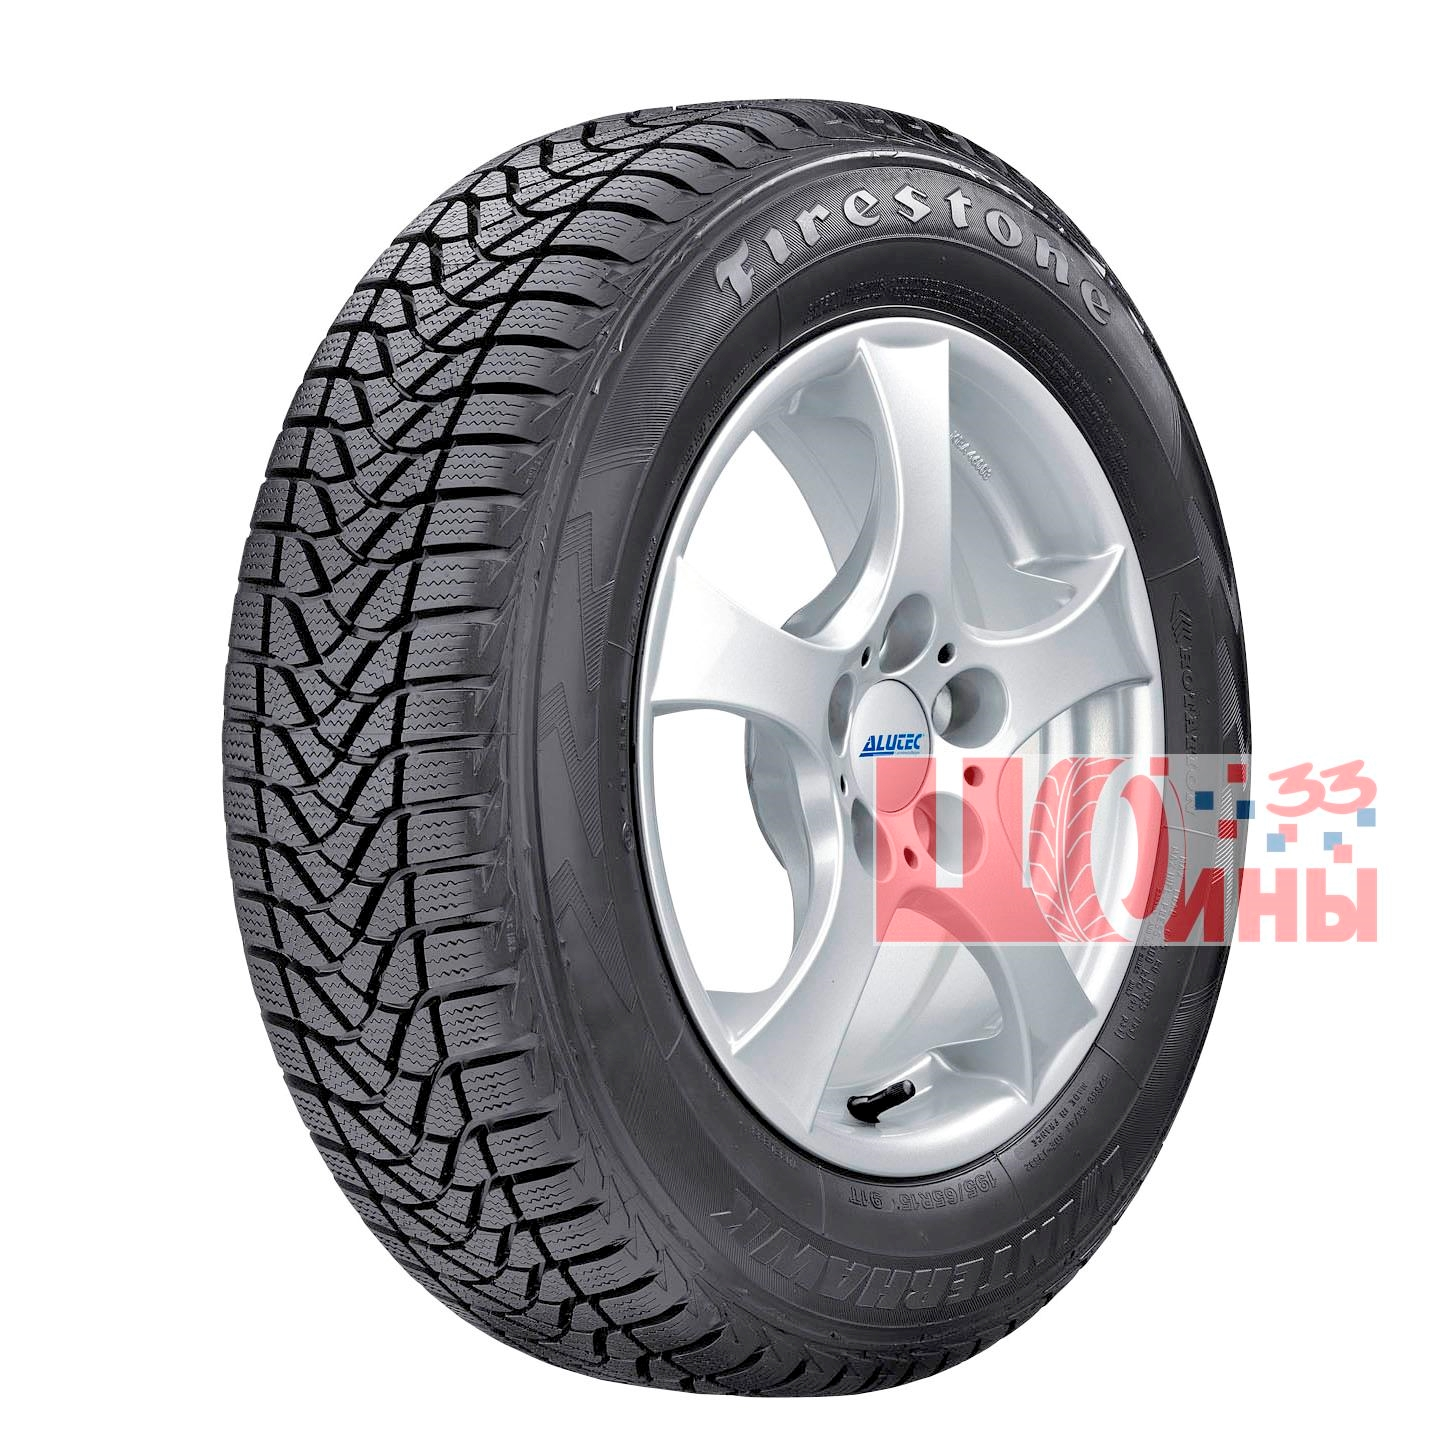 Б/У 195/65 R15 Зима FIRESTONE Winterhawk Кат. 1